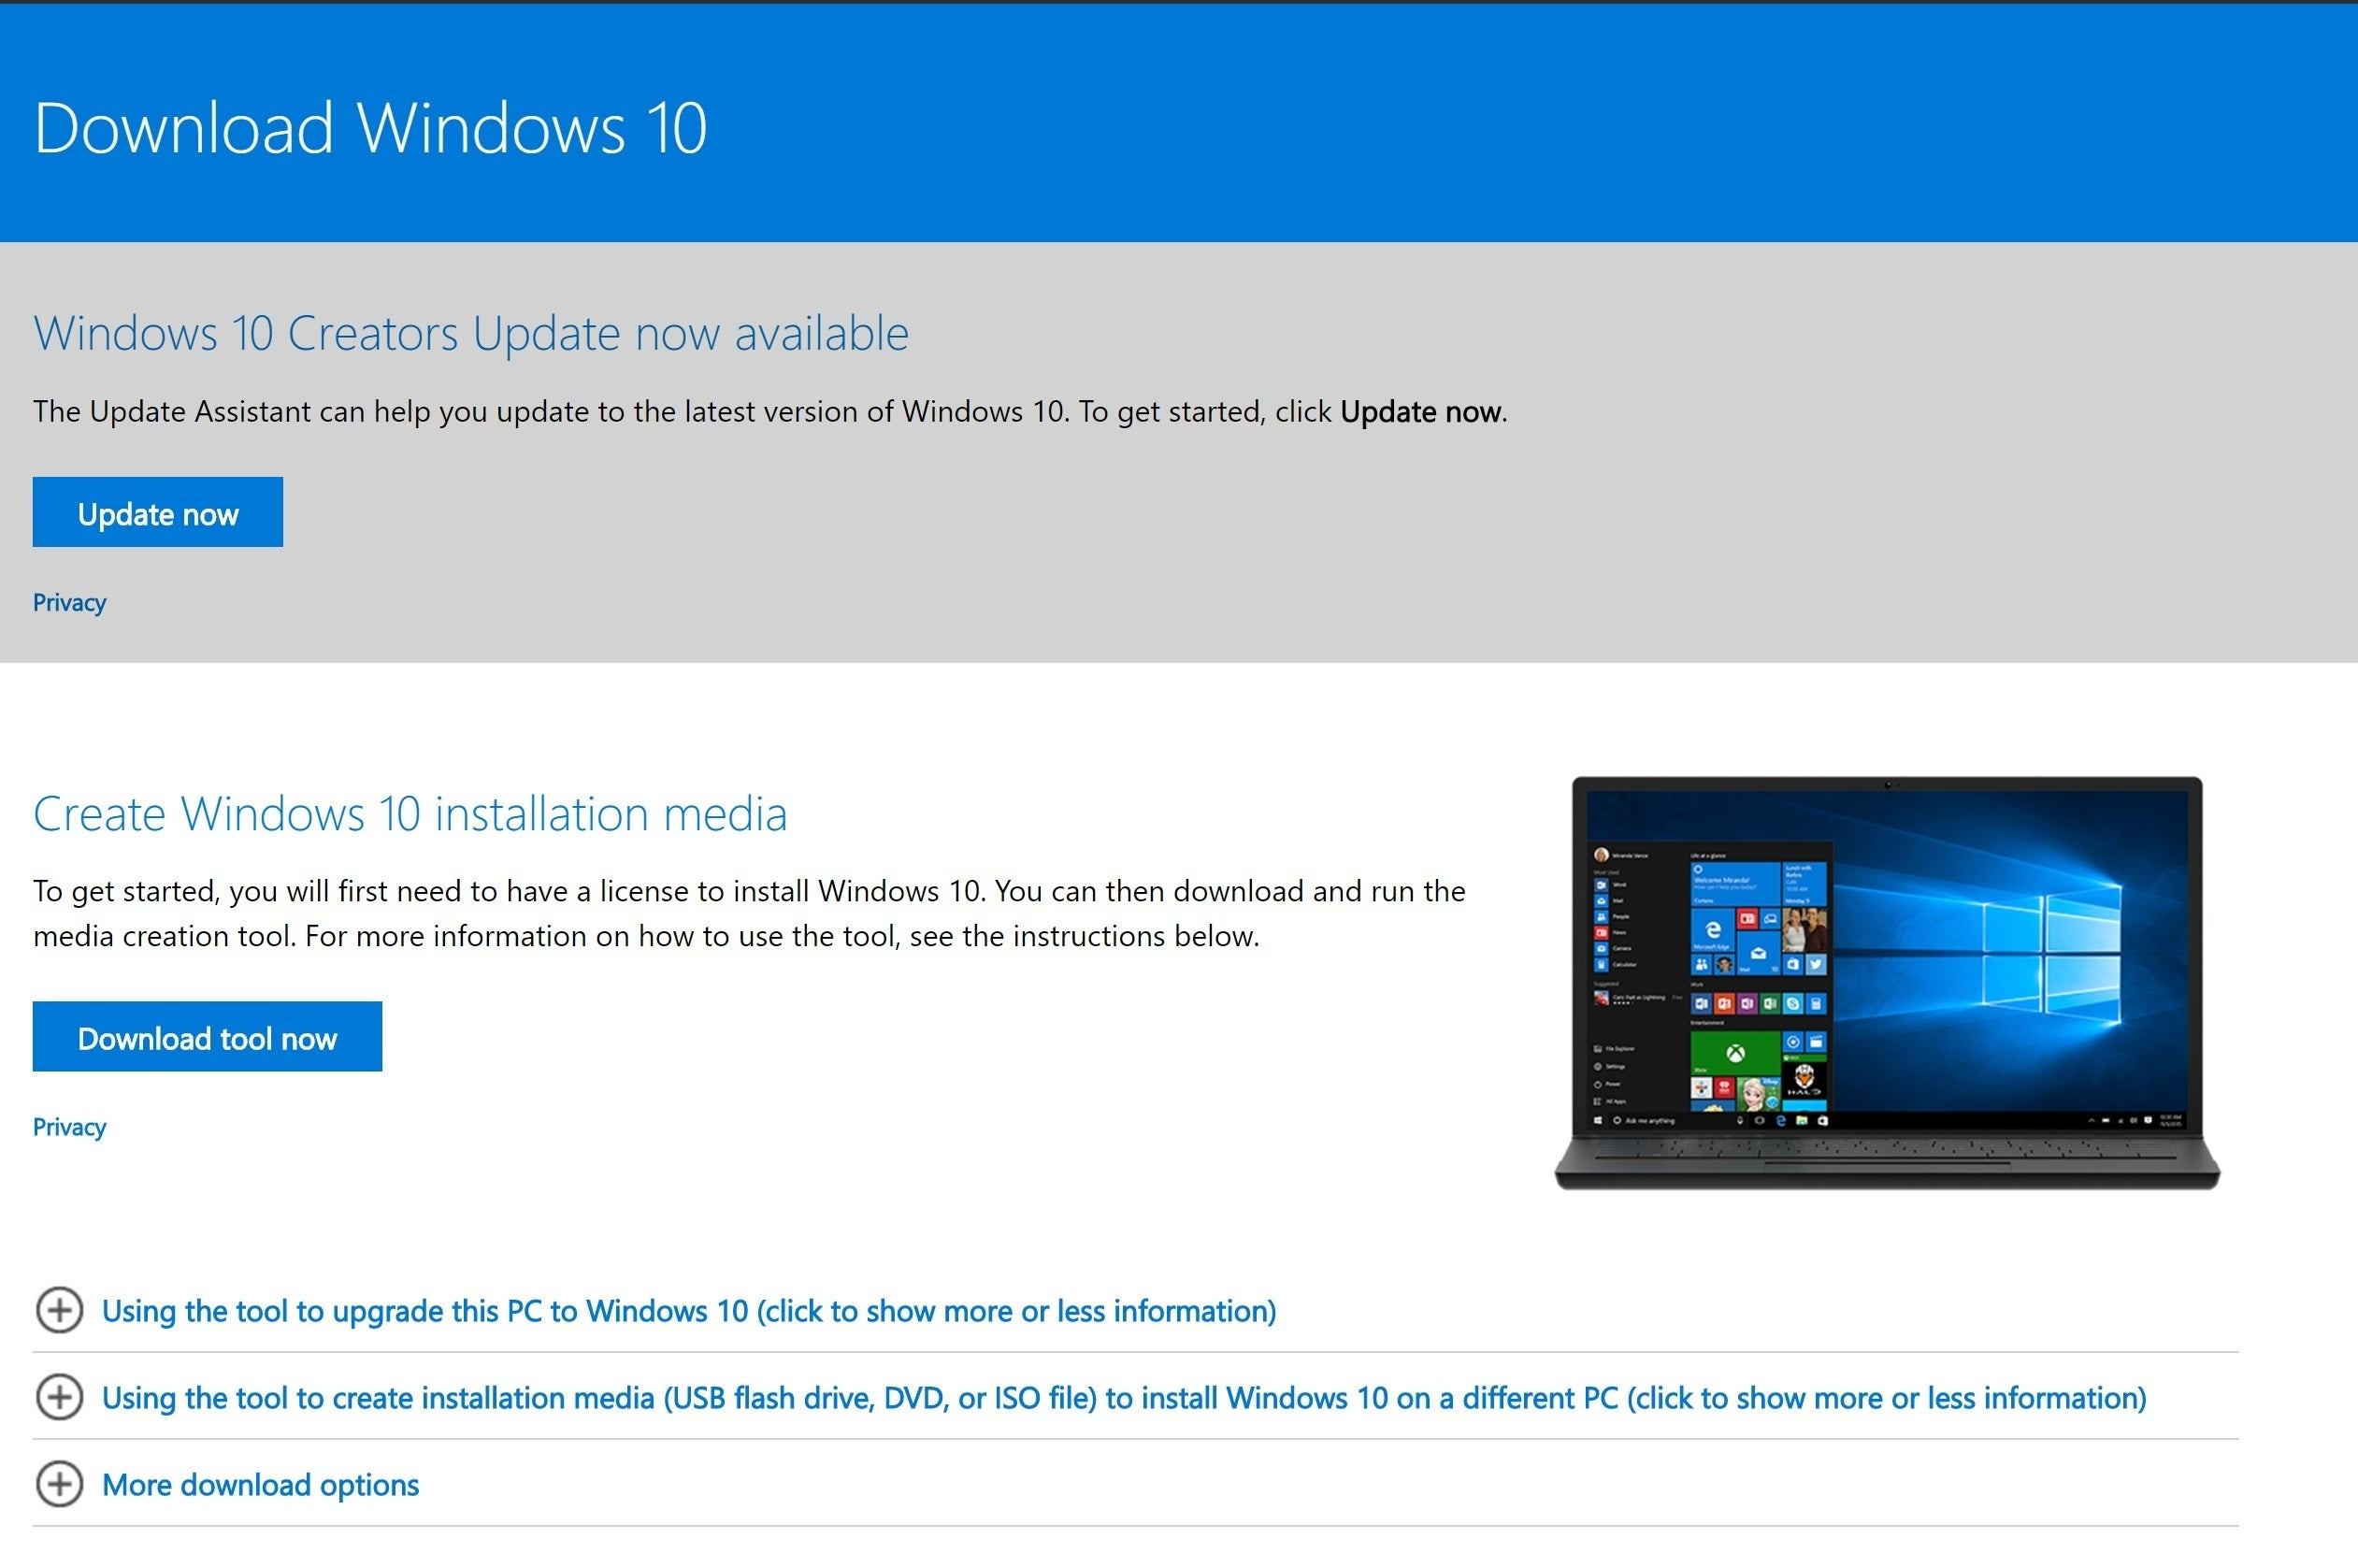 How to download a windows 10 iso file pcworld for Windows 10 site